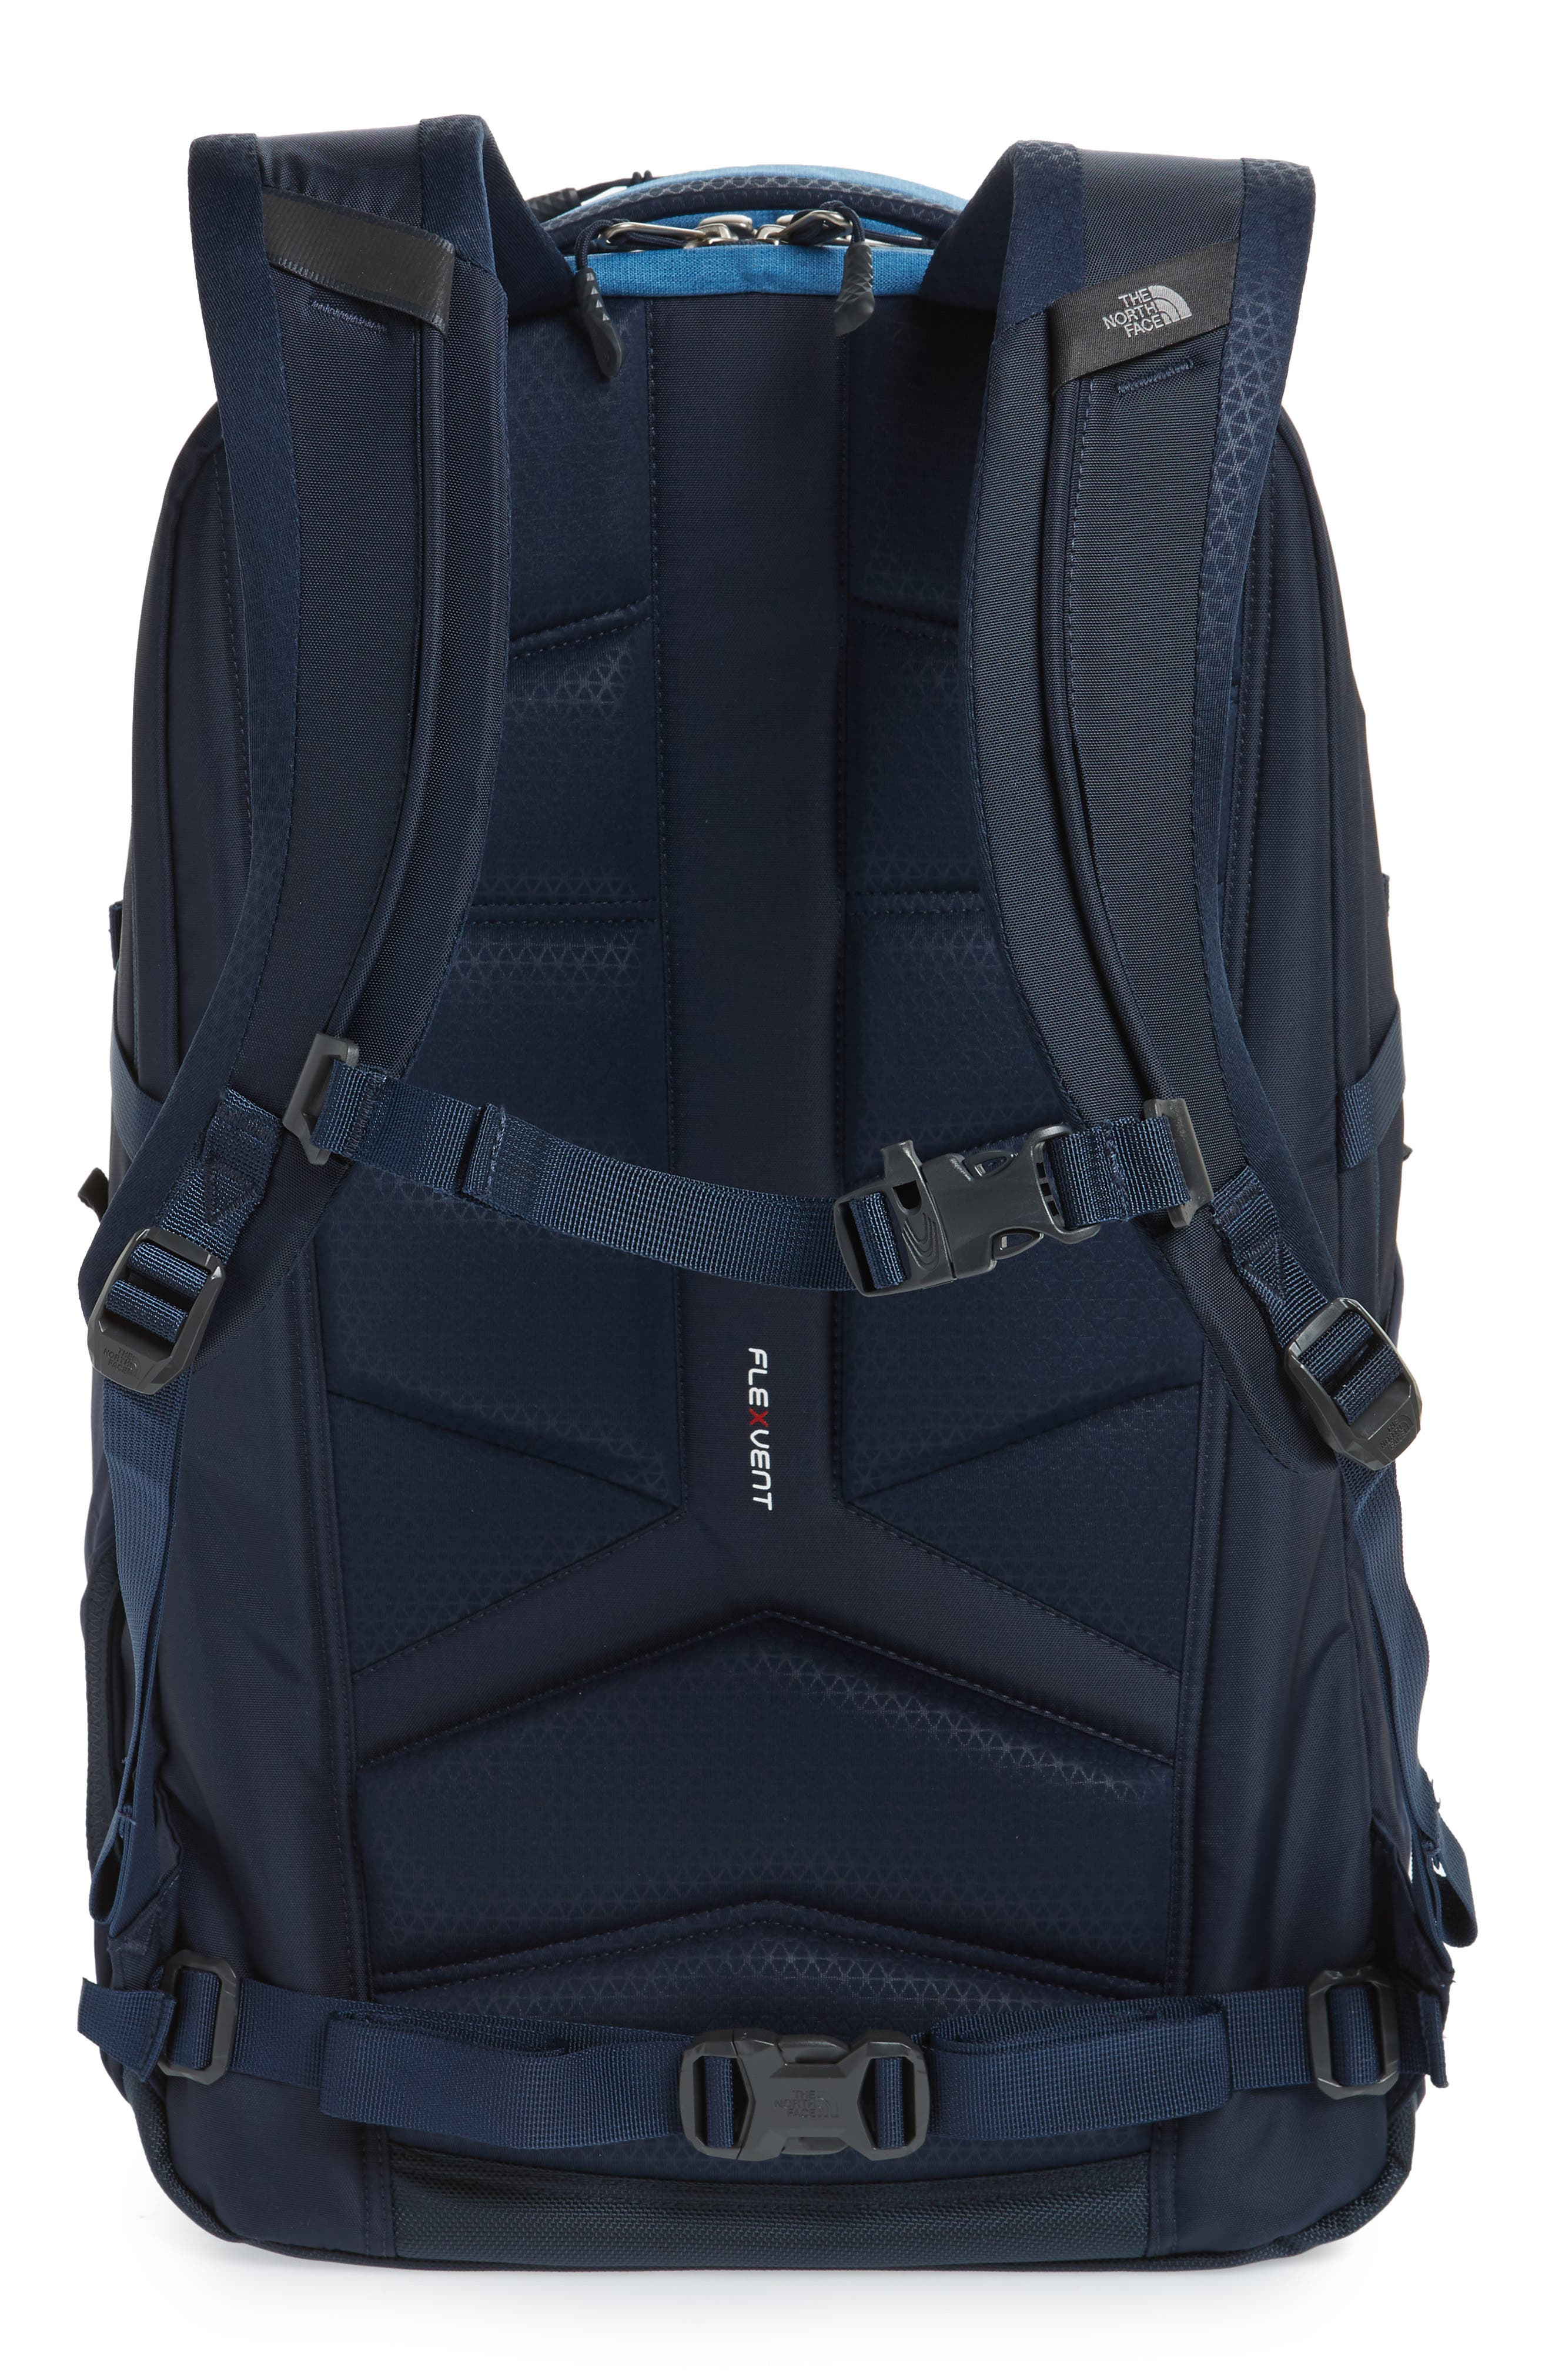 Router Backpack,                             Alternate thumbnail 3, color,                             DISH BLUE HEATHER/ URBAN NAVY